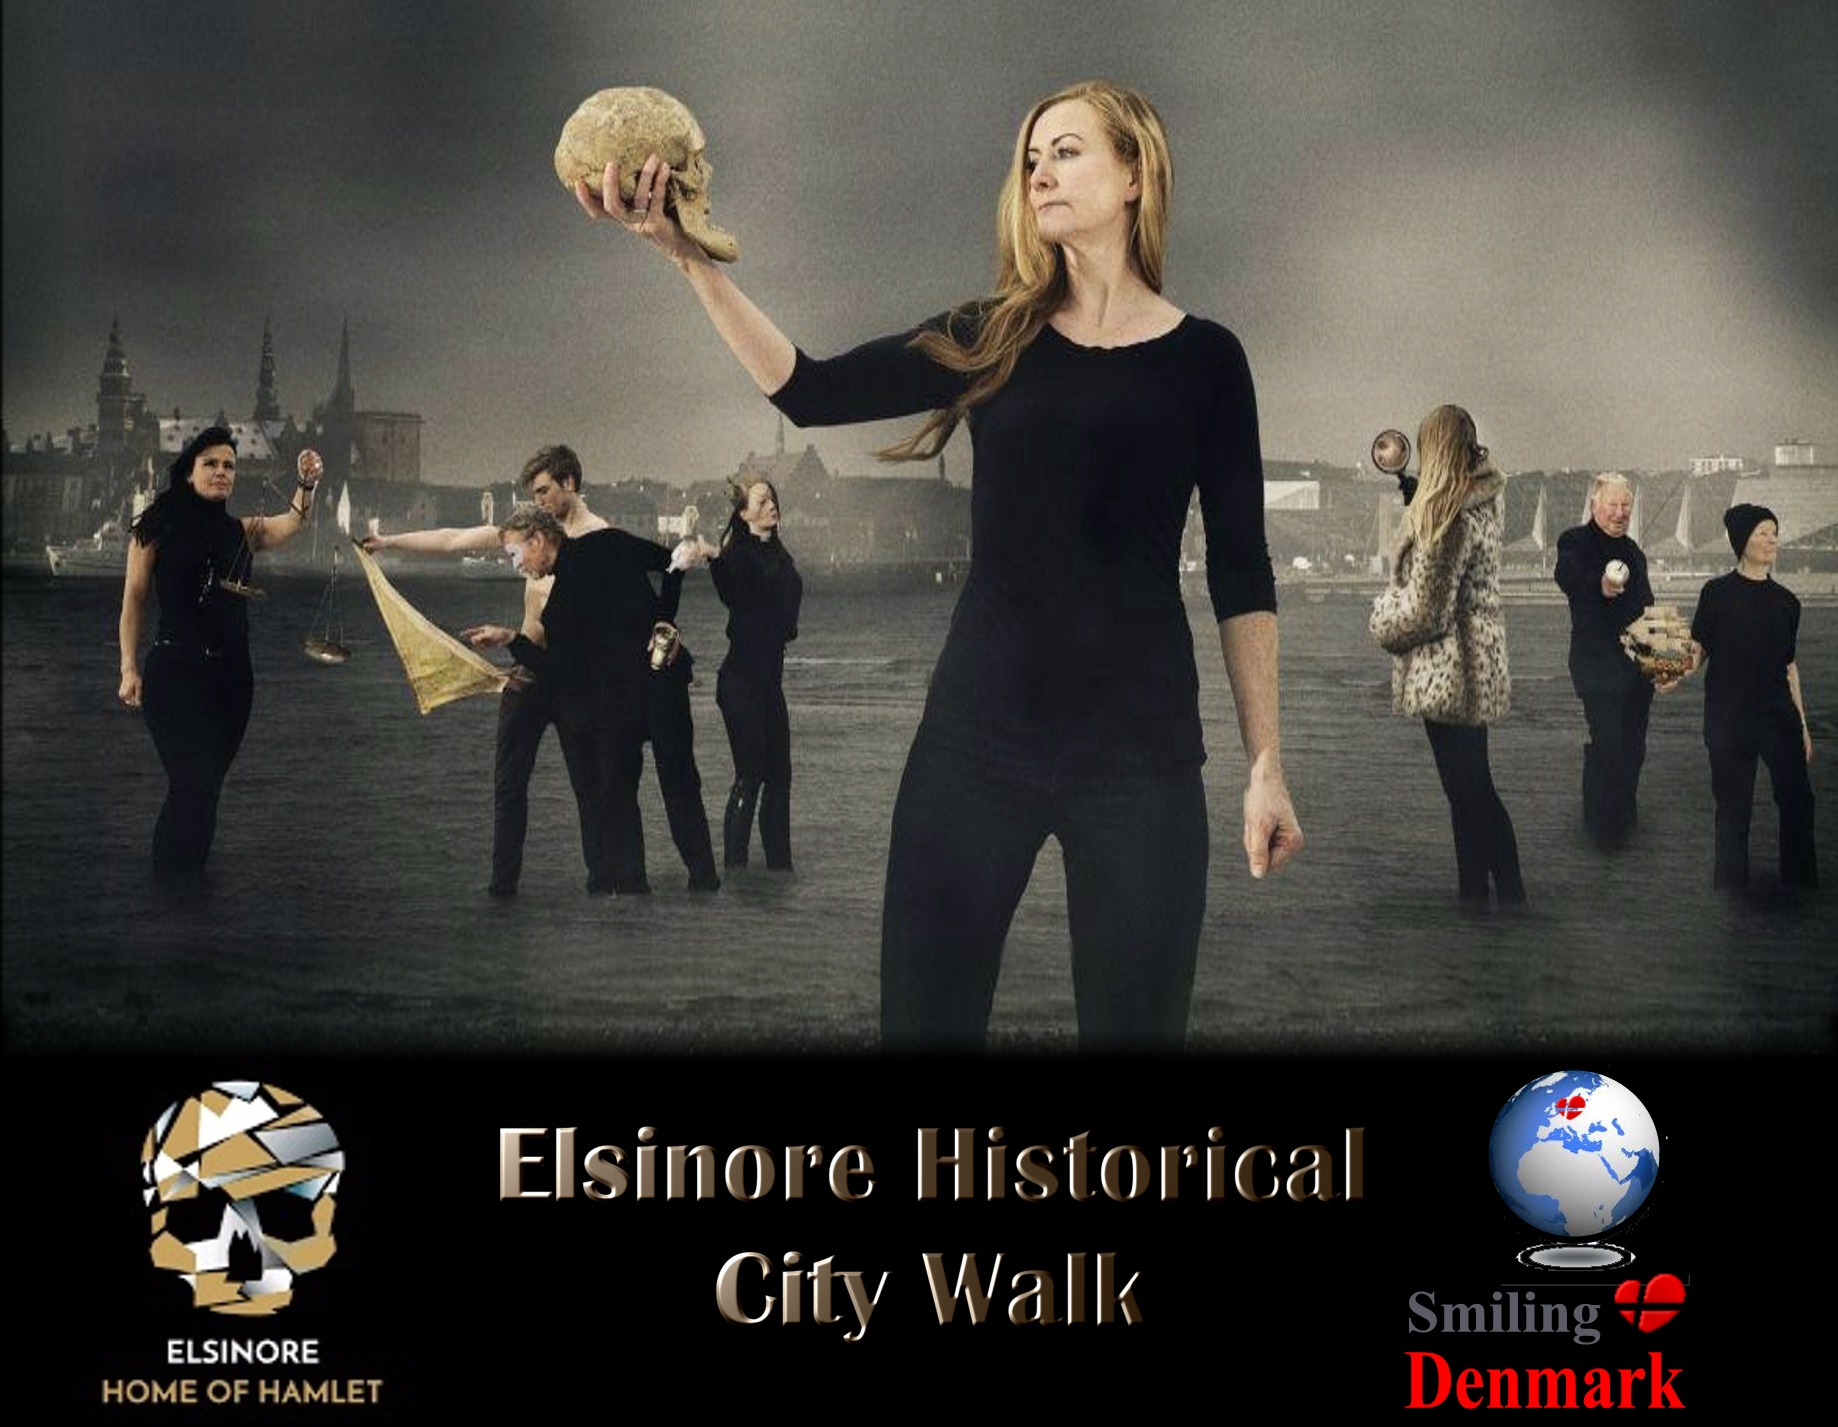 Elsinore City Walk